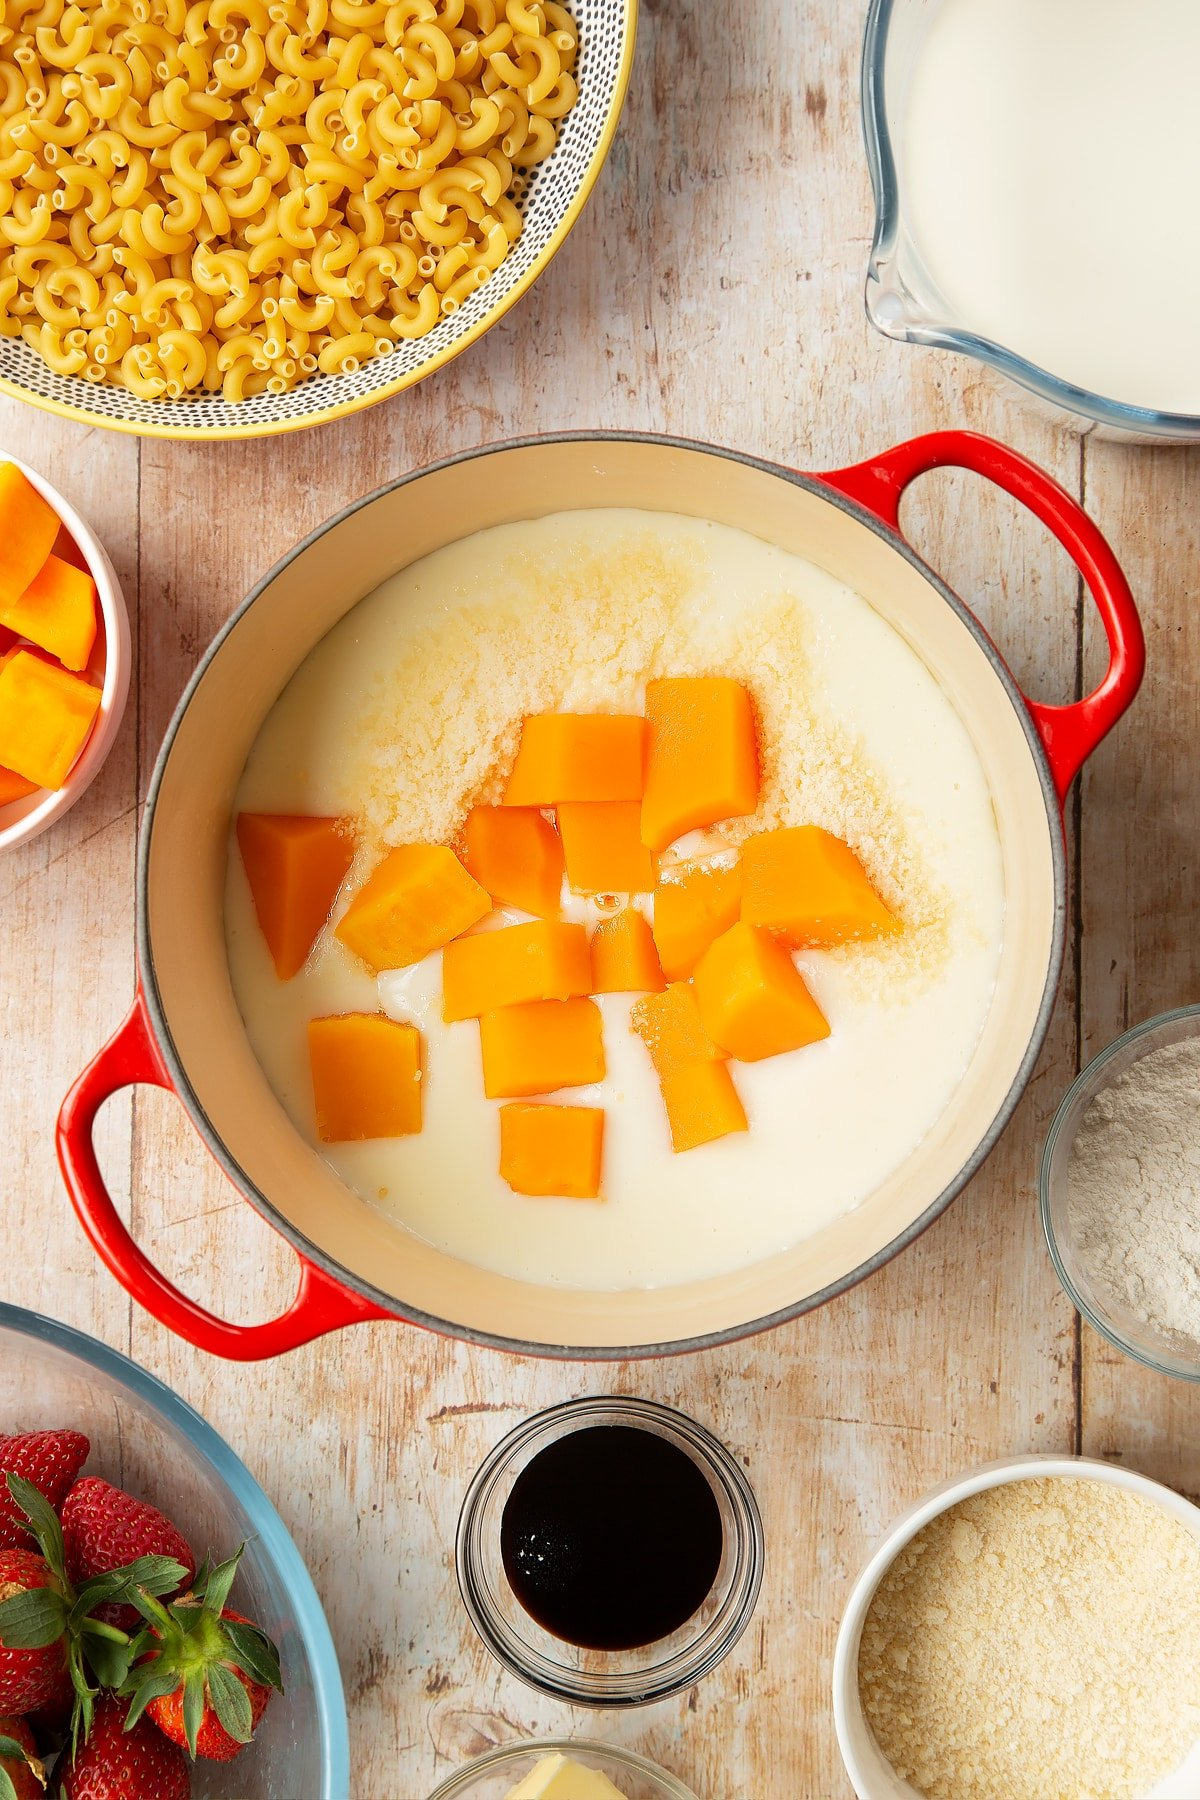 A saucepan containing a white sauce made with milk, butter and flour, topped with Parmesan cheese and butternut squash. The pan is surrounded by ingredients for strawberry pasta.